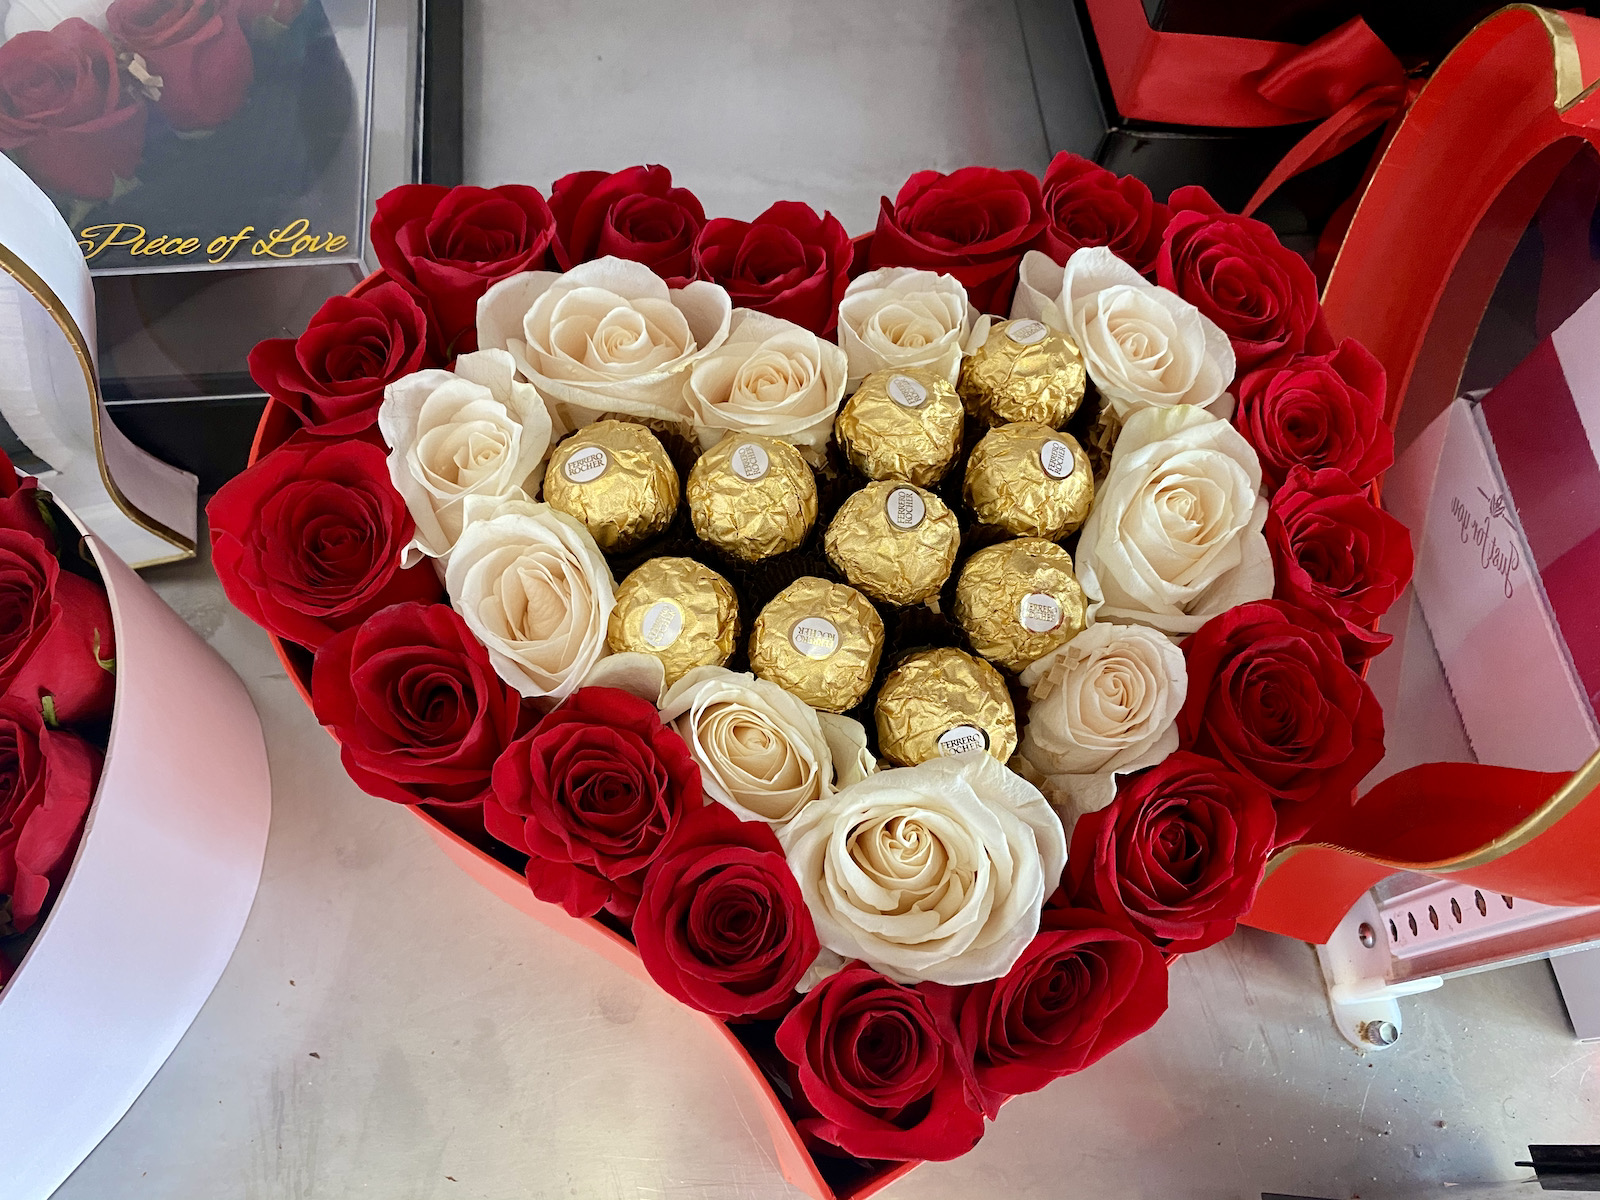 Heart shaped box of candies and roses